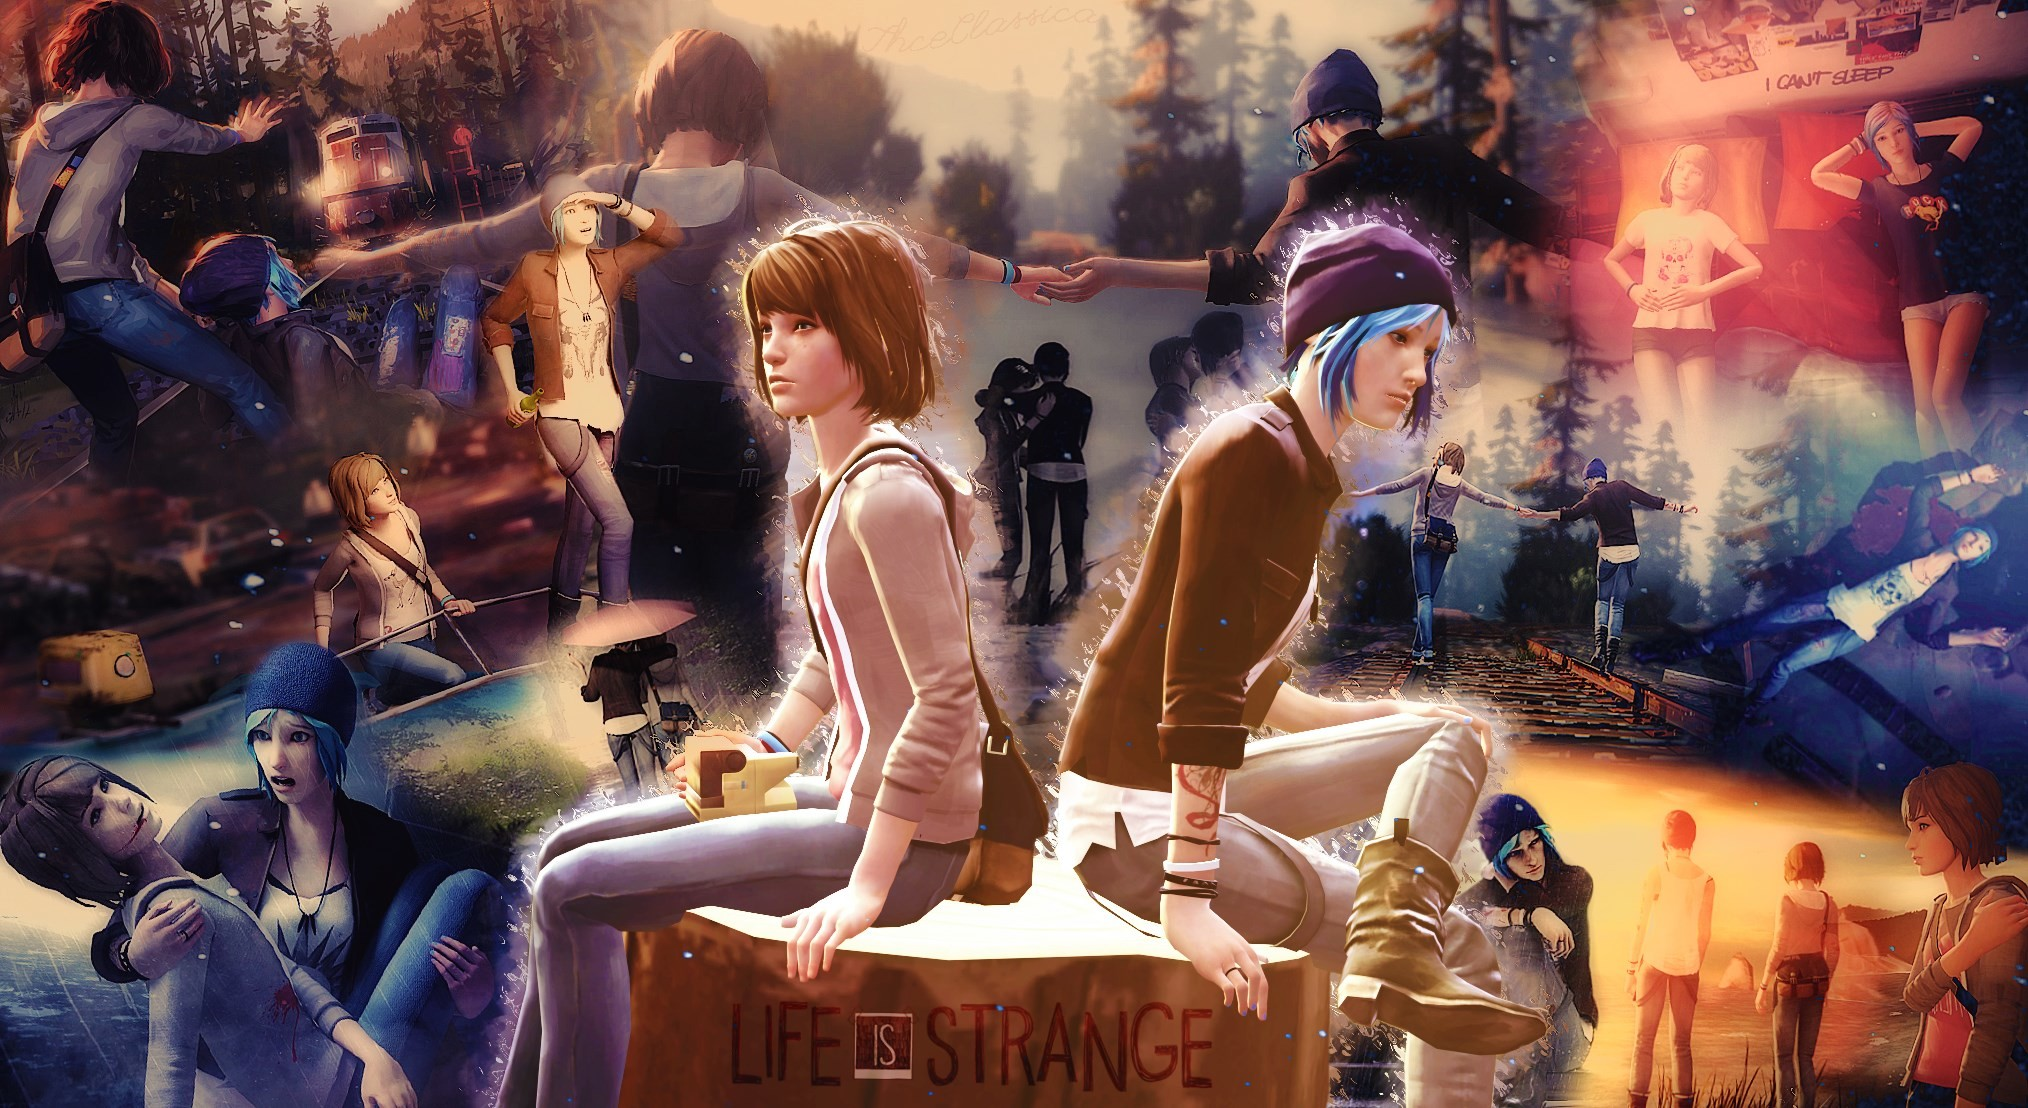 2017-03-23 – life is strange picture: Wallpapers Collection, #1713529